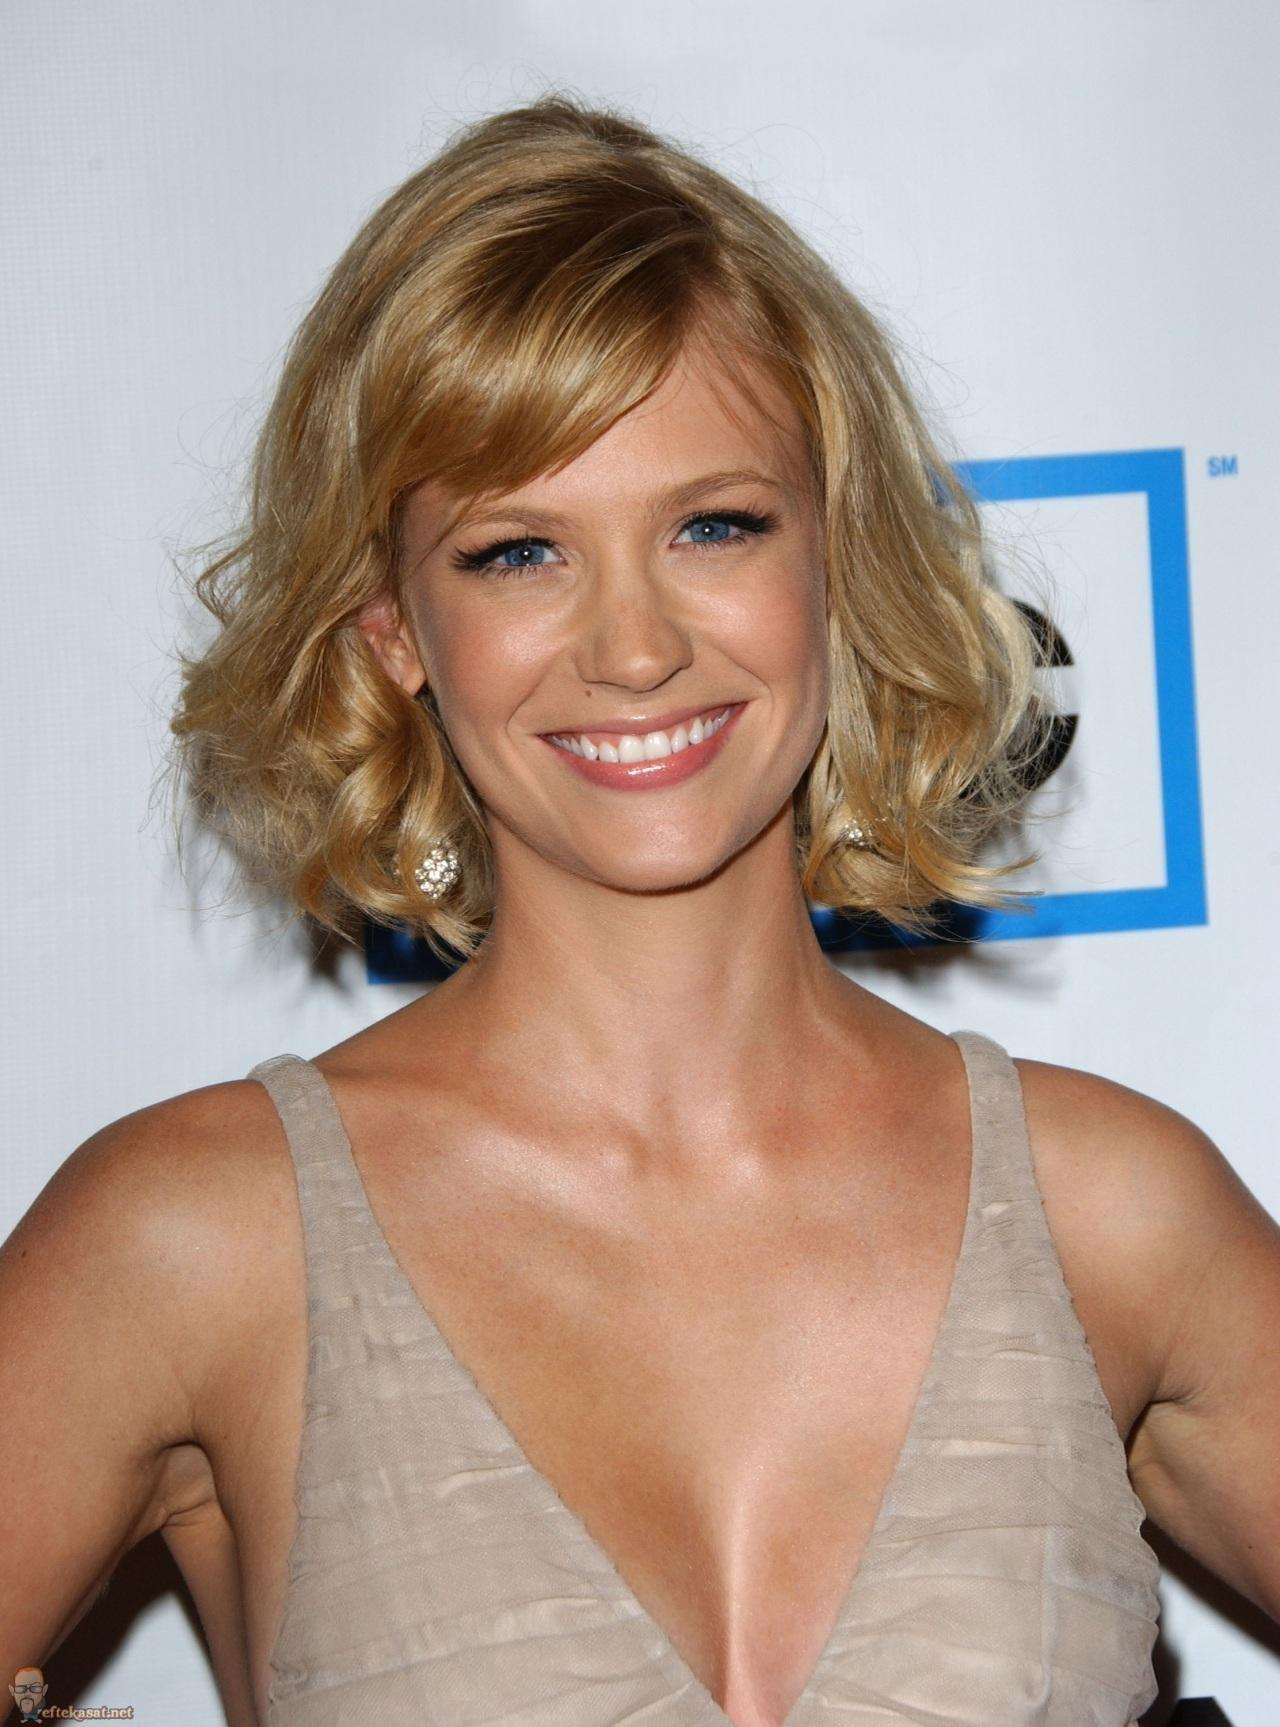 January Jones Wallpapers High Quality | Download Free